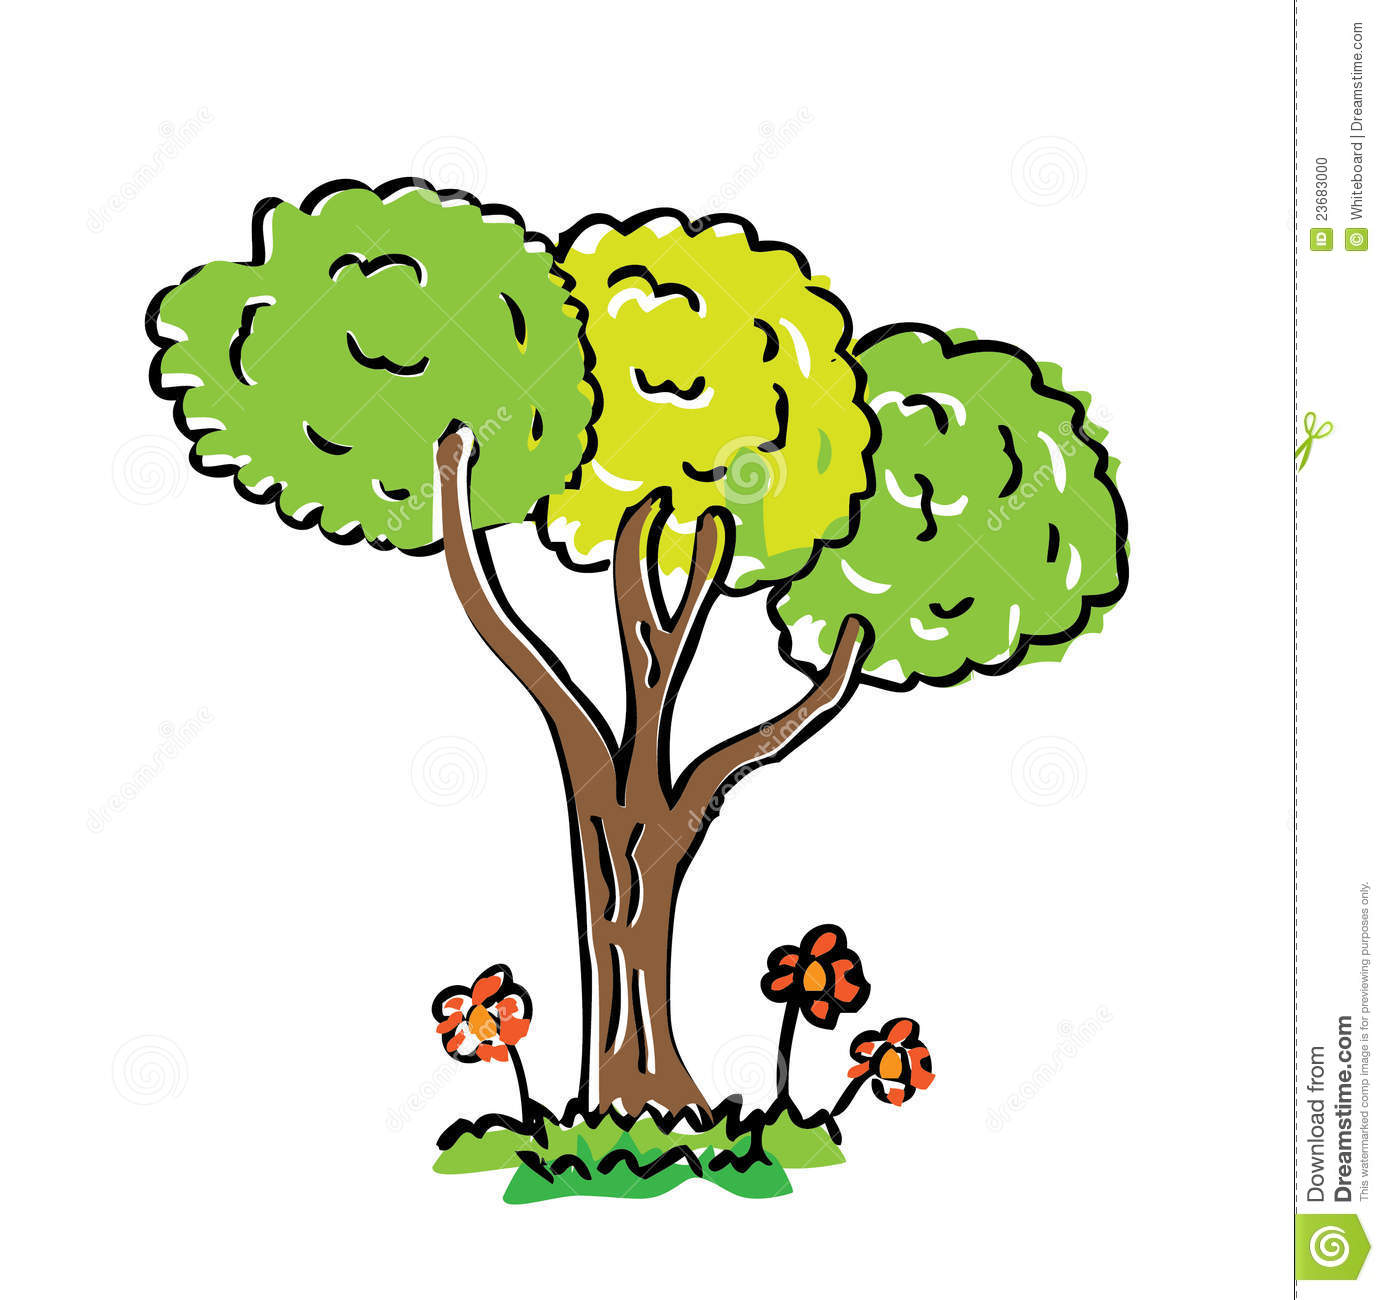 Cartoon Drawing Tree With Color Stock Illustration - Illustration of ... for Tree Drawing With Color  268zmd